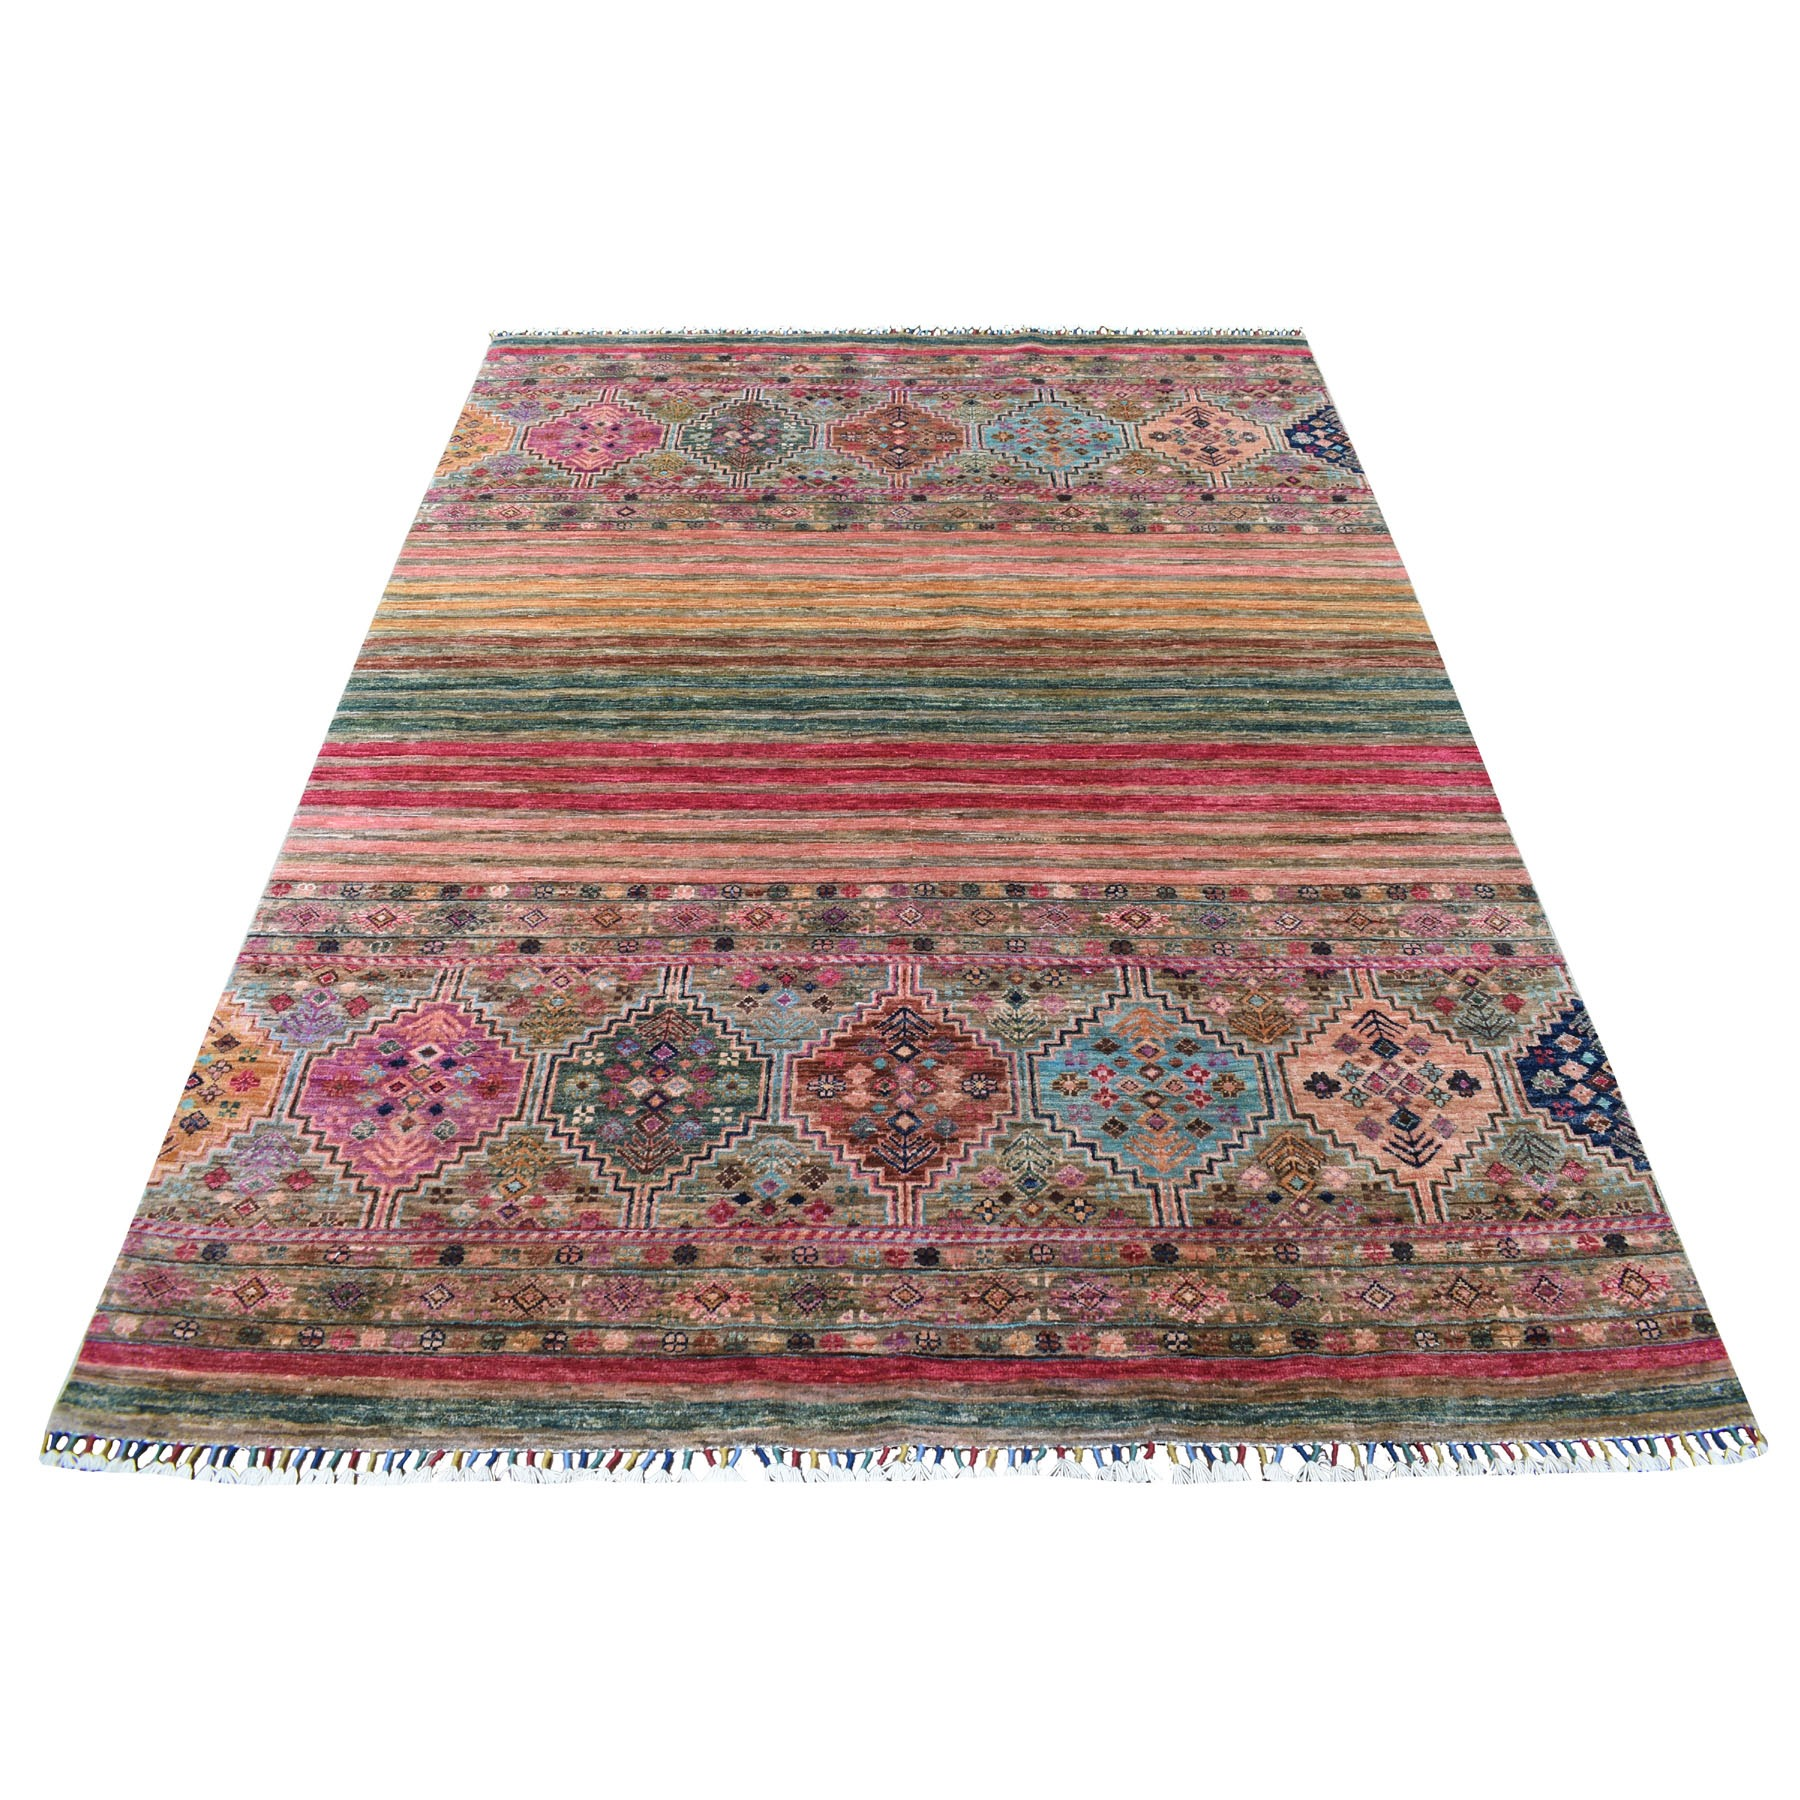 "5'7""x7'6"" Red With Colorful Tassles Hand Knotted Super Kazak In A Colorful Palette Khorjin Design Afghan Wool Oriental Rug"